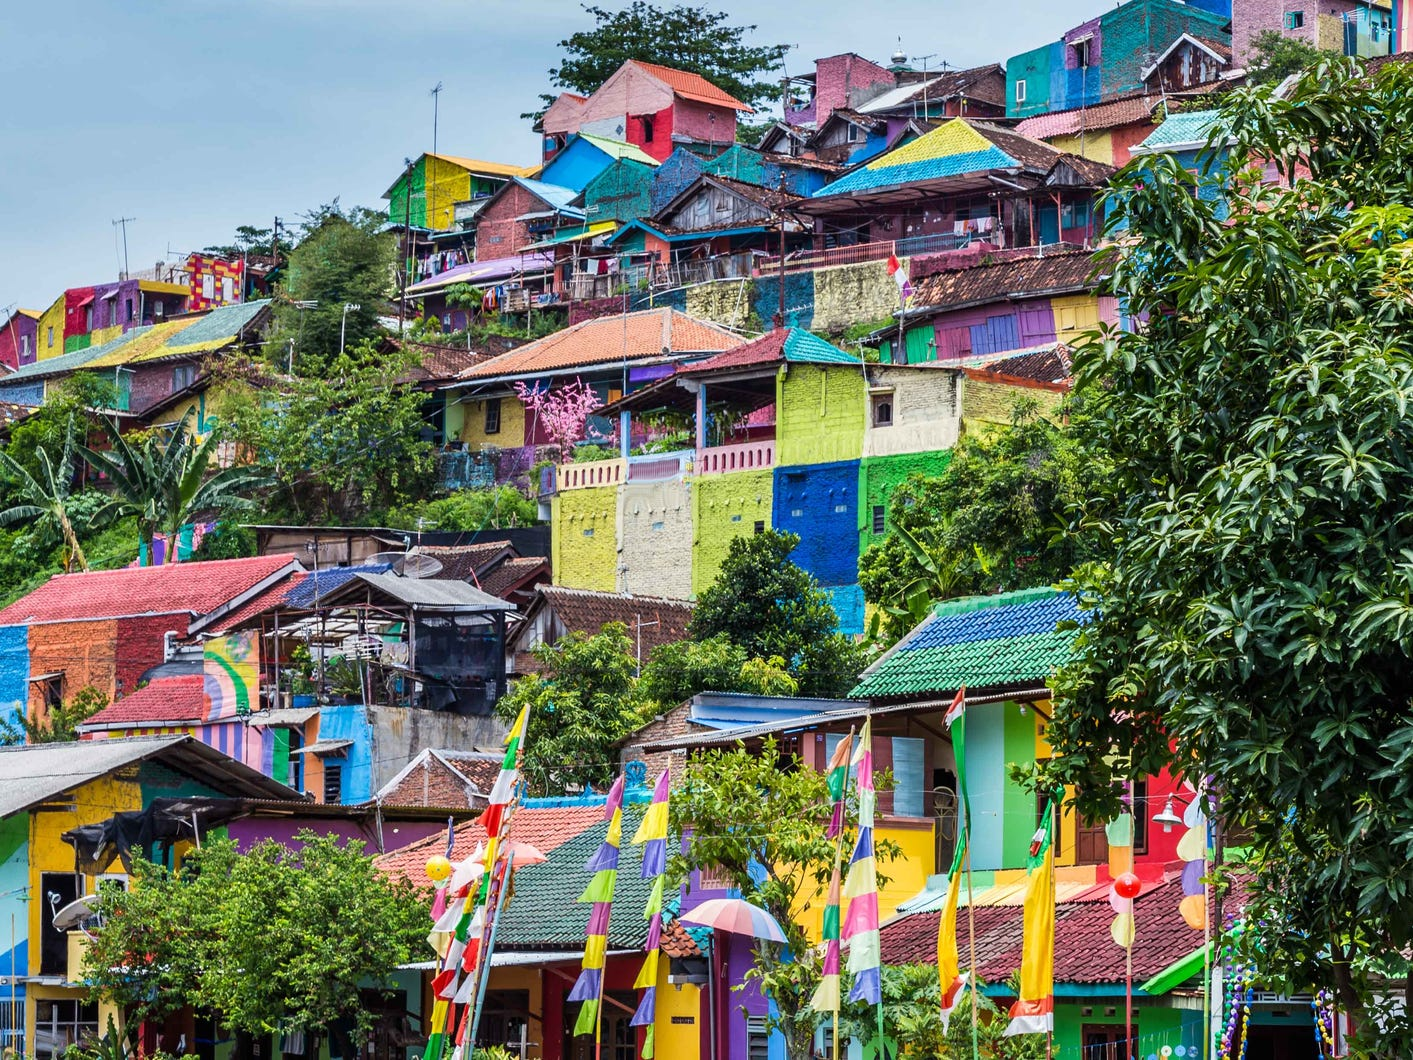 Kampung Pelangi, Indonesia: Known as the Rainbow Village, Kampung Pelangi is a recent entrant onto the list of the world's most colorful cities.